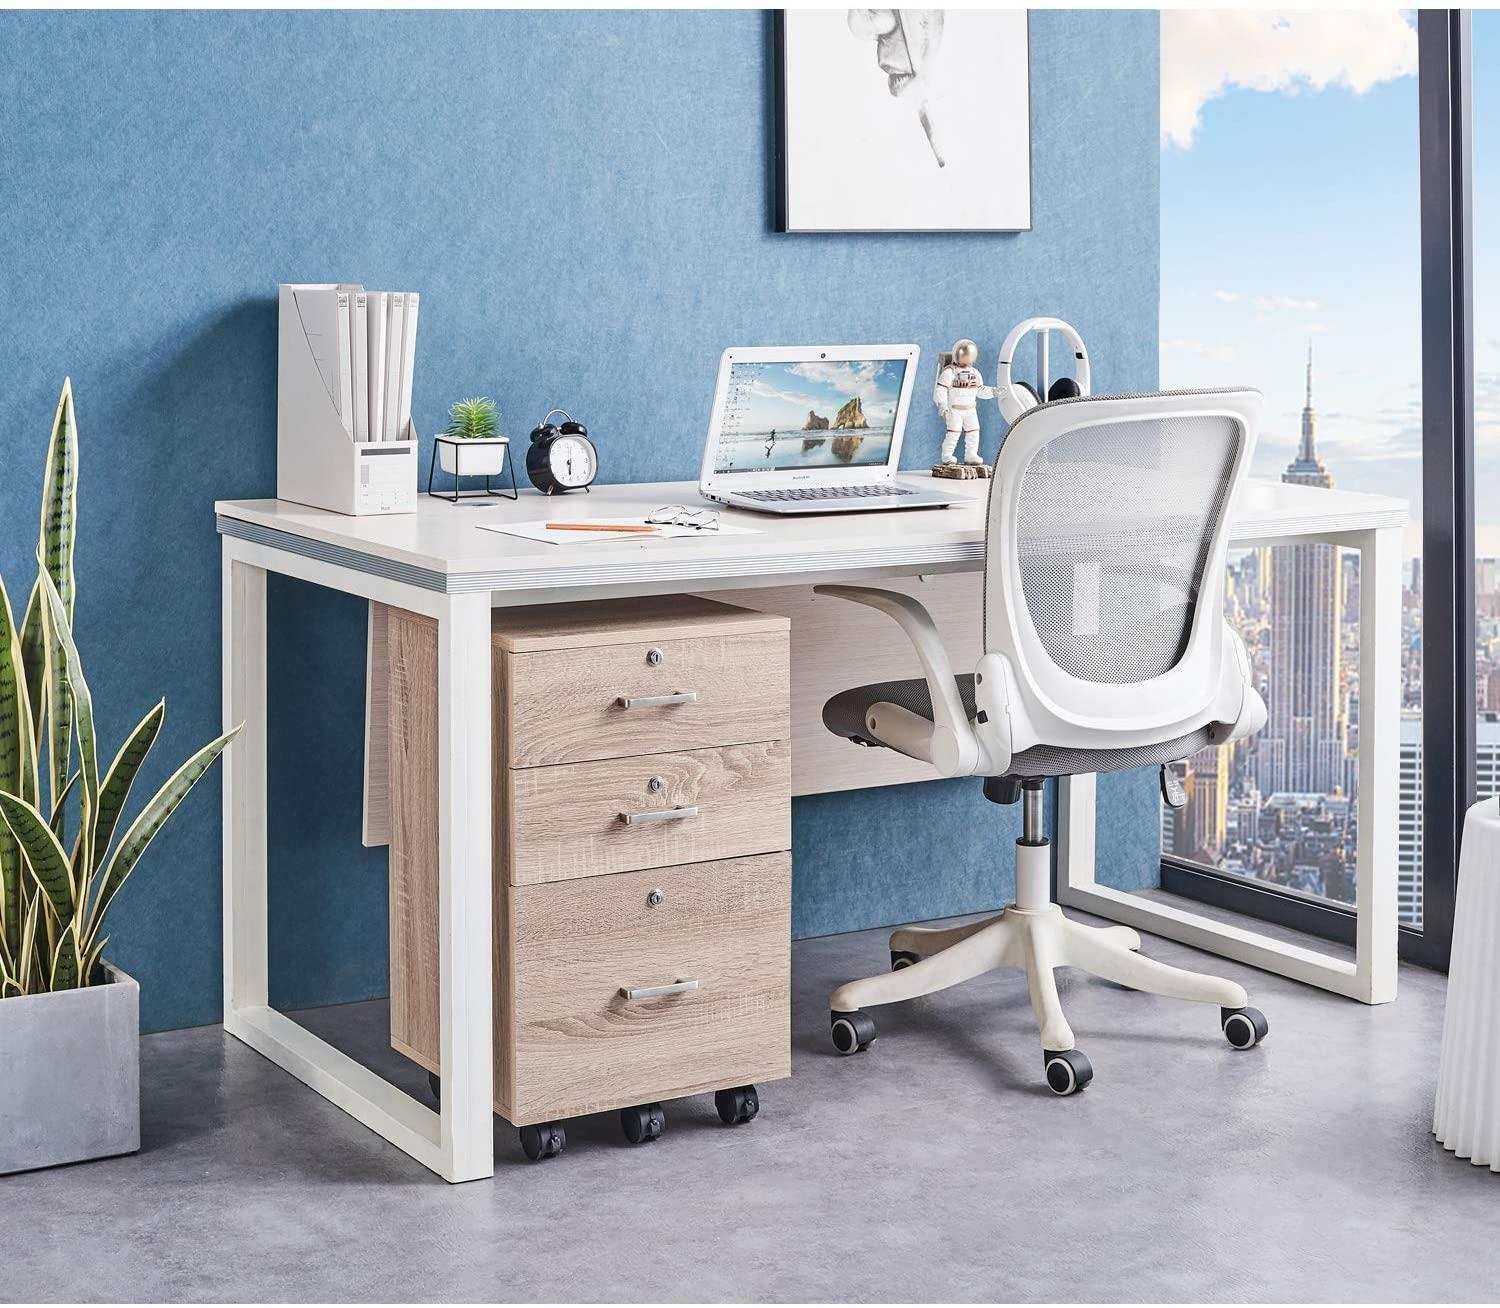 Color : B1 Wood File Cabinet 3-Layer Desktop Organizer Storage Box with Drawers for Monitor Stand//Printer Platform-2 Color